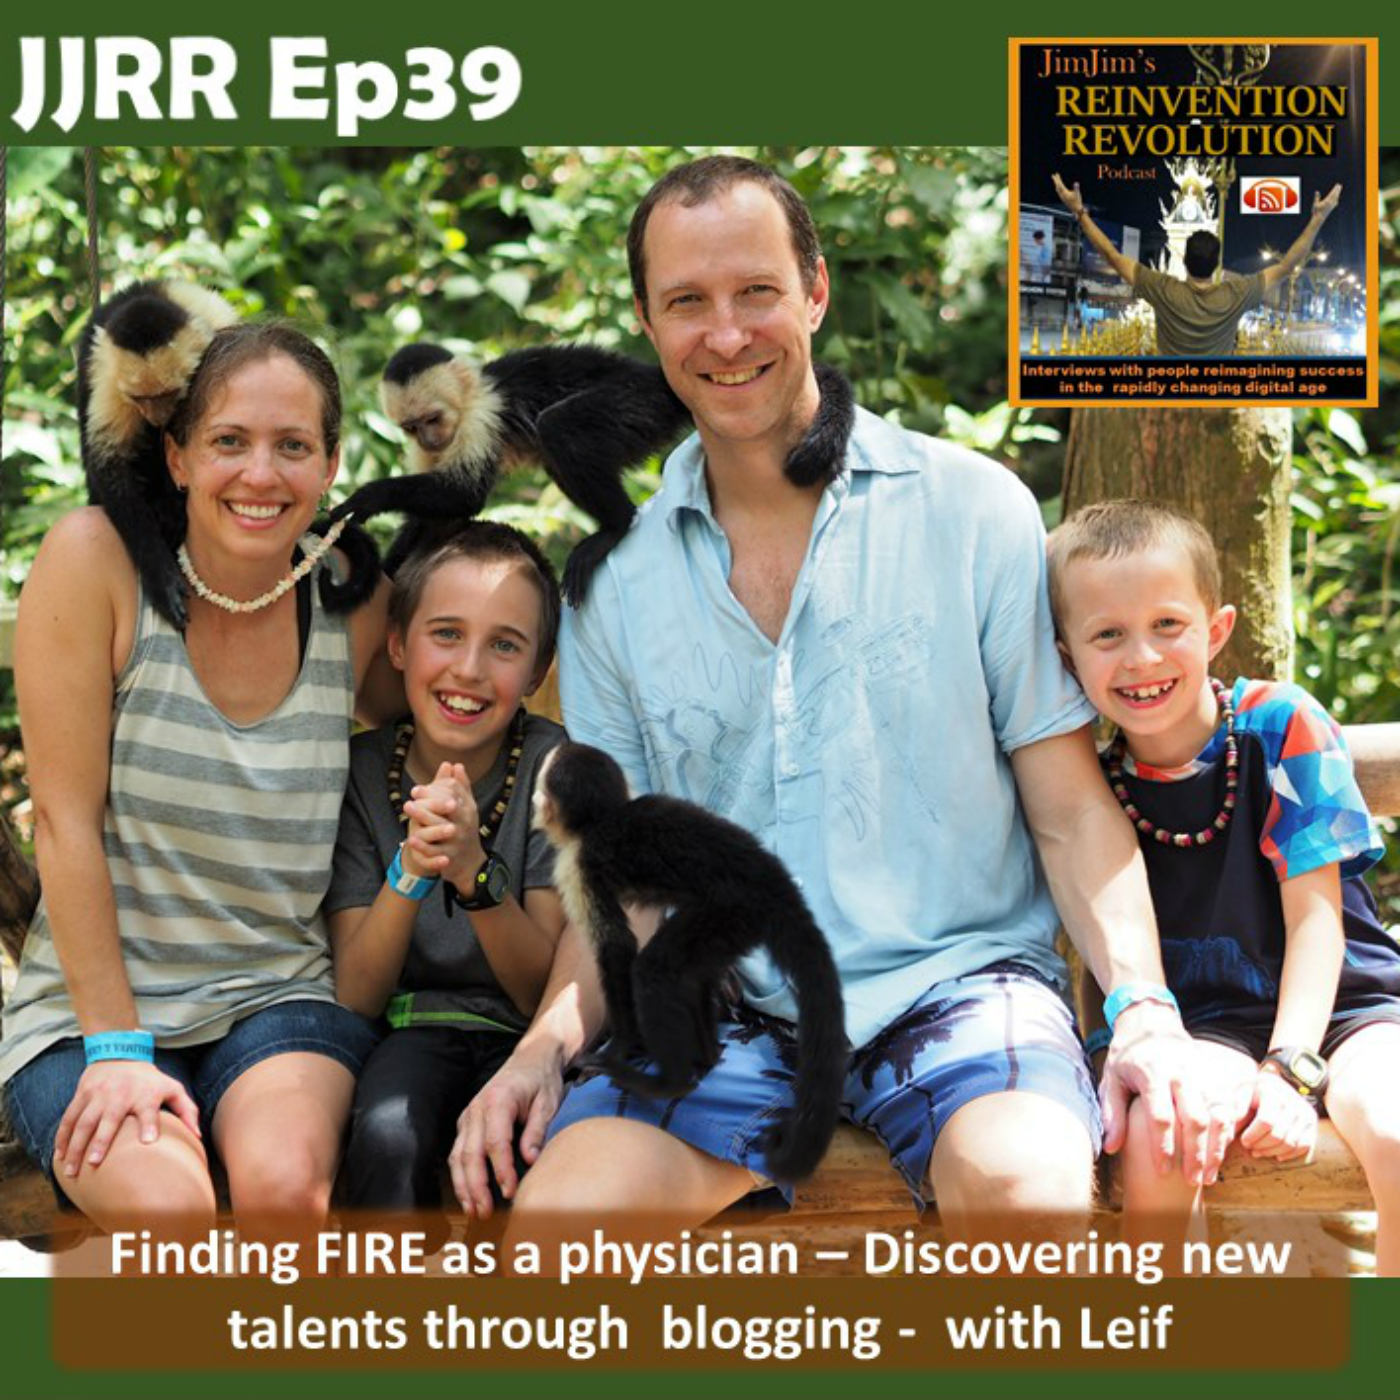 JJRR Ep39 Finding FIRE as a physician – Discovering new talents through blogging – with Leif